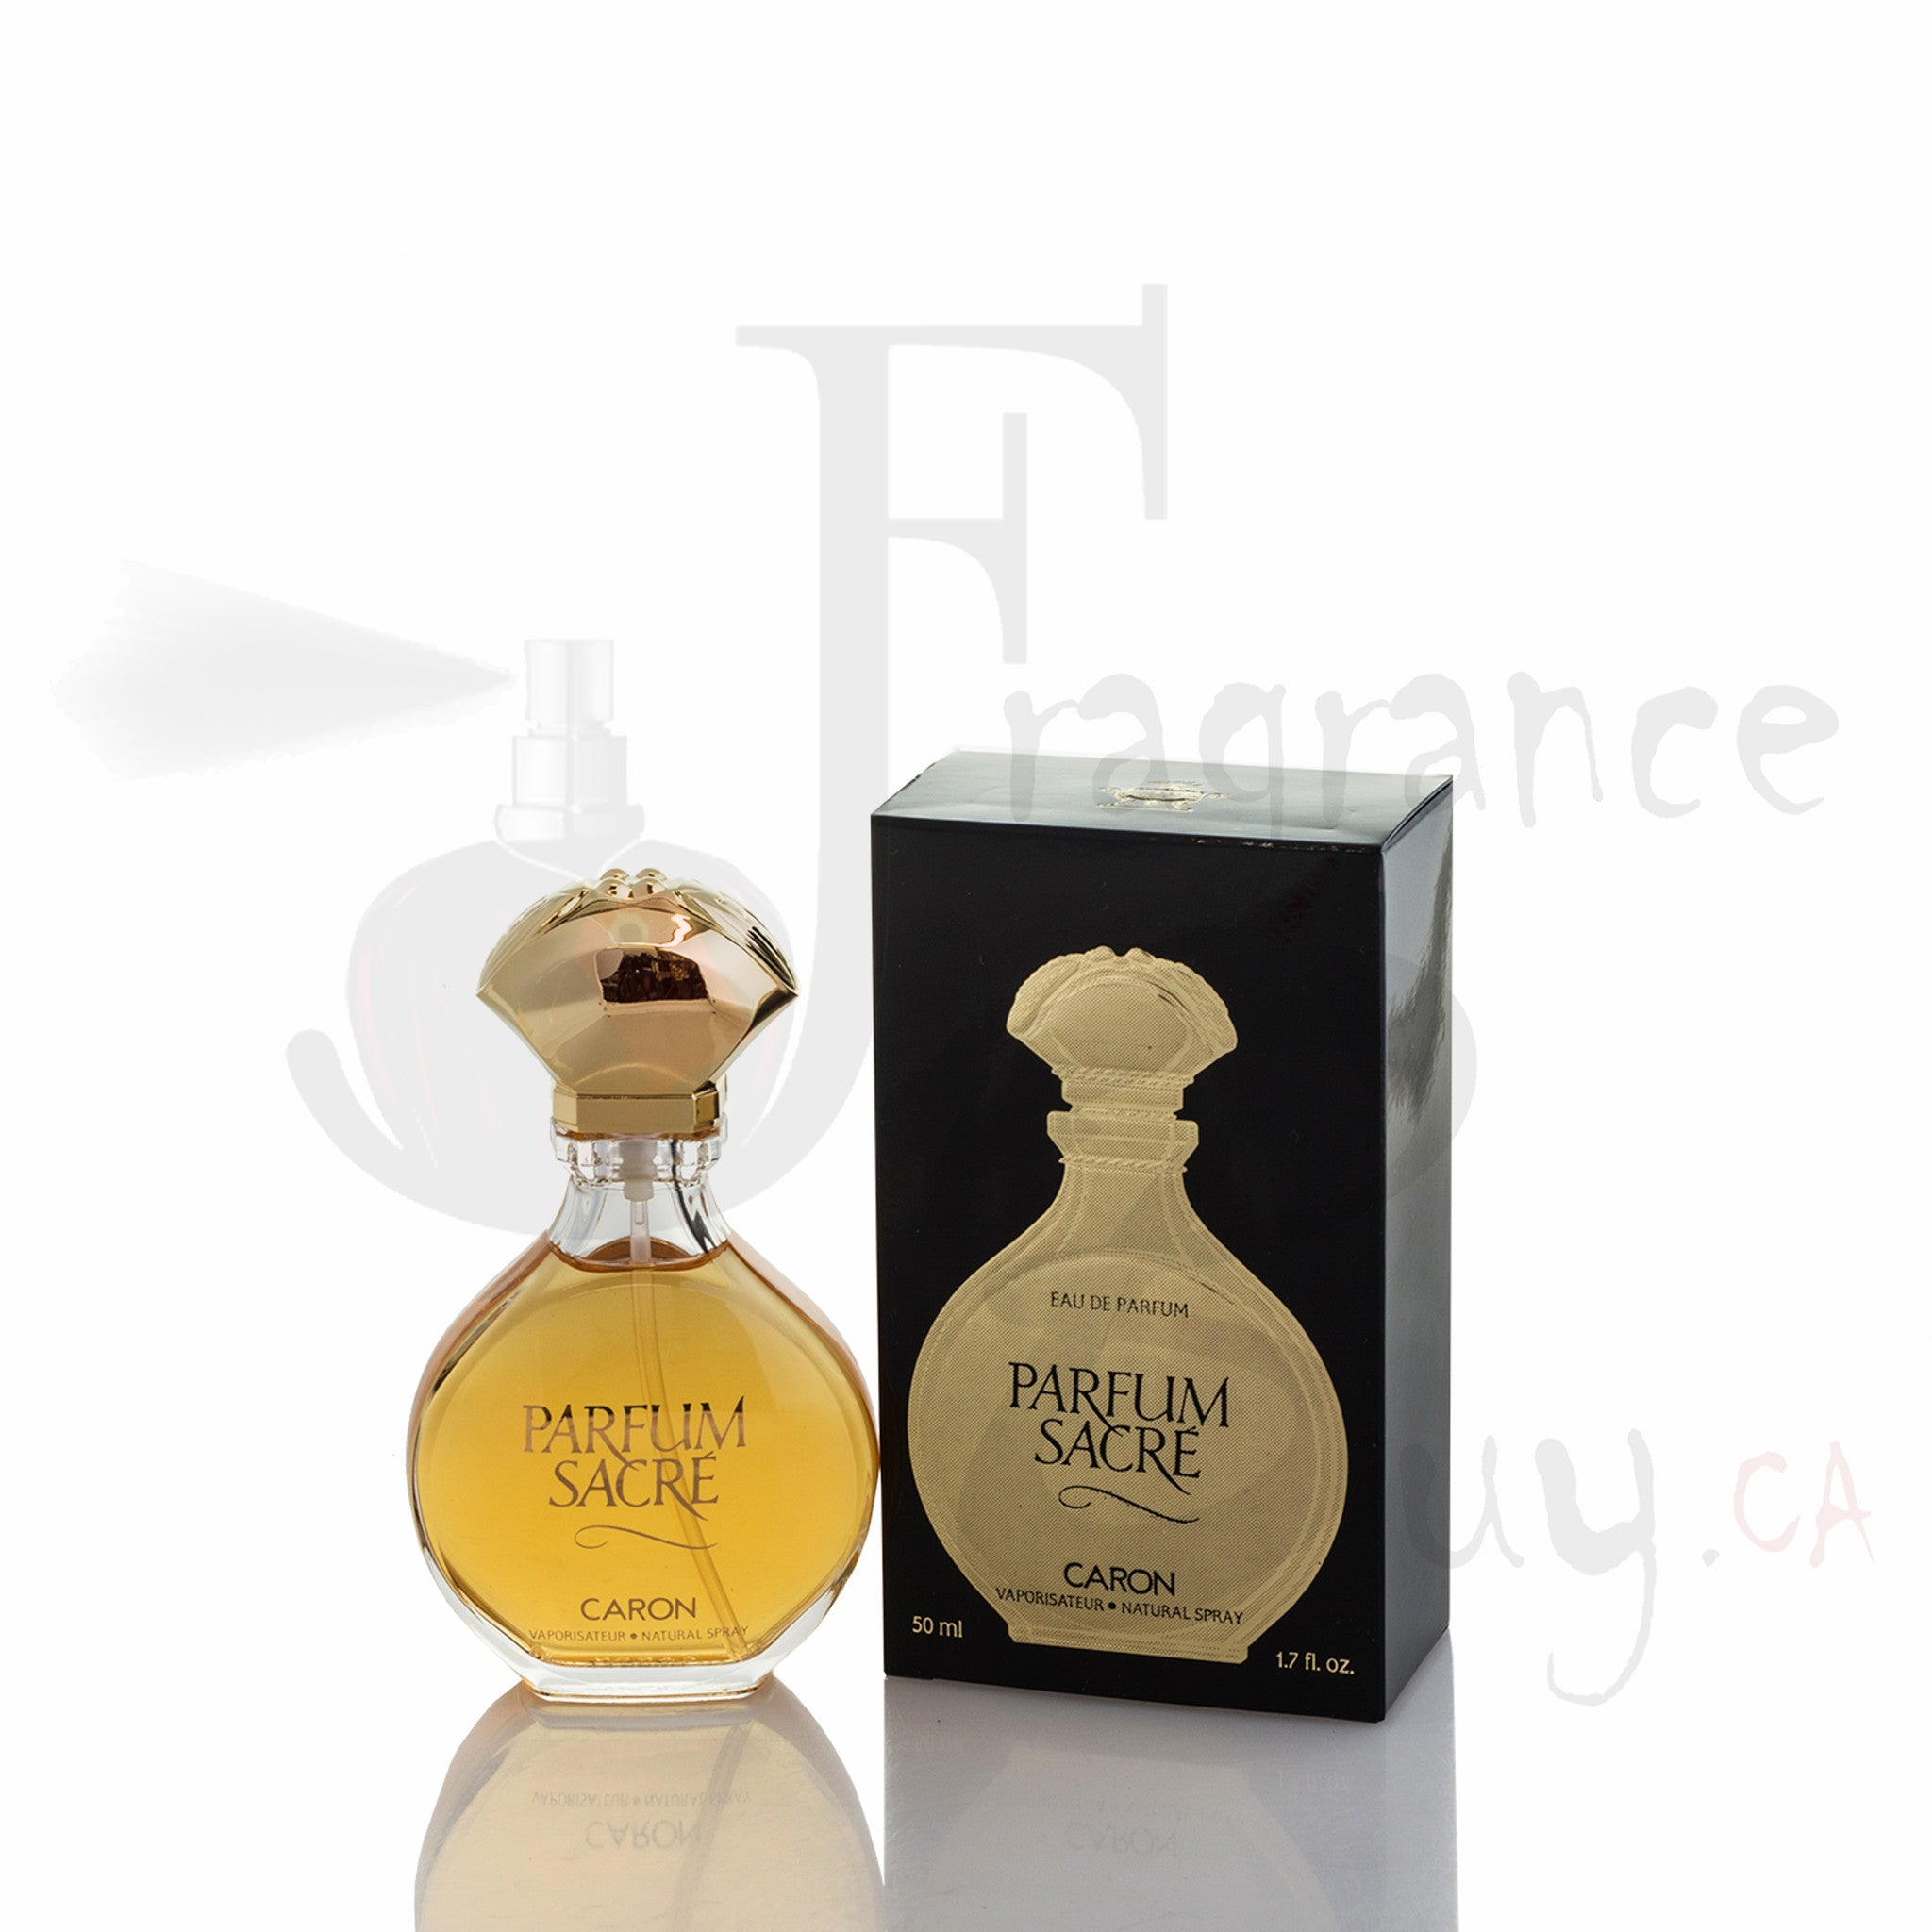 Caron Parfum Sacre (Vintage) For Woman